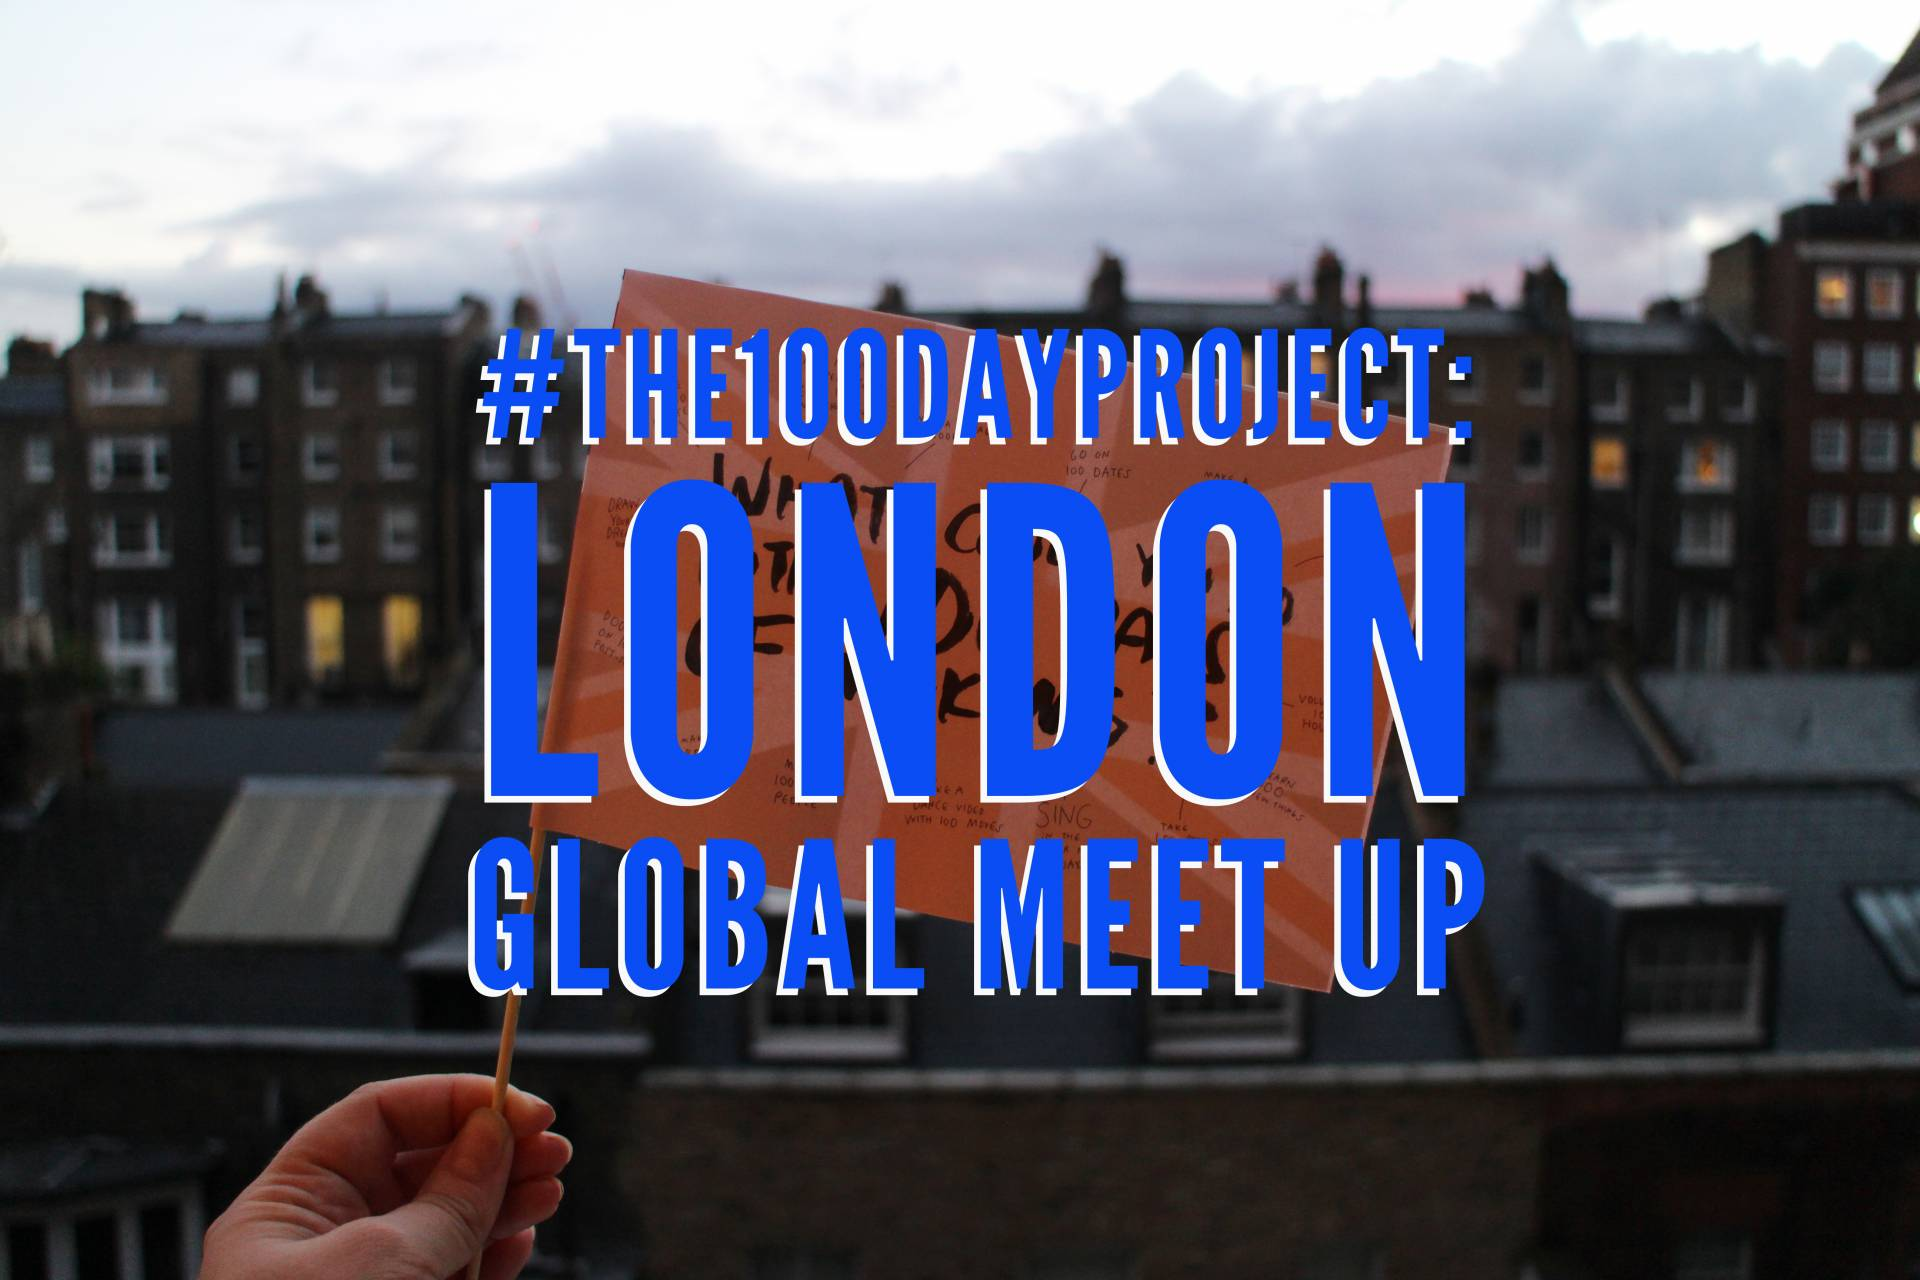 https://graphiquefantastique.com/wp-content/uploads/2015/09/The100DayProjectLondonMeetUp.jpg